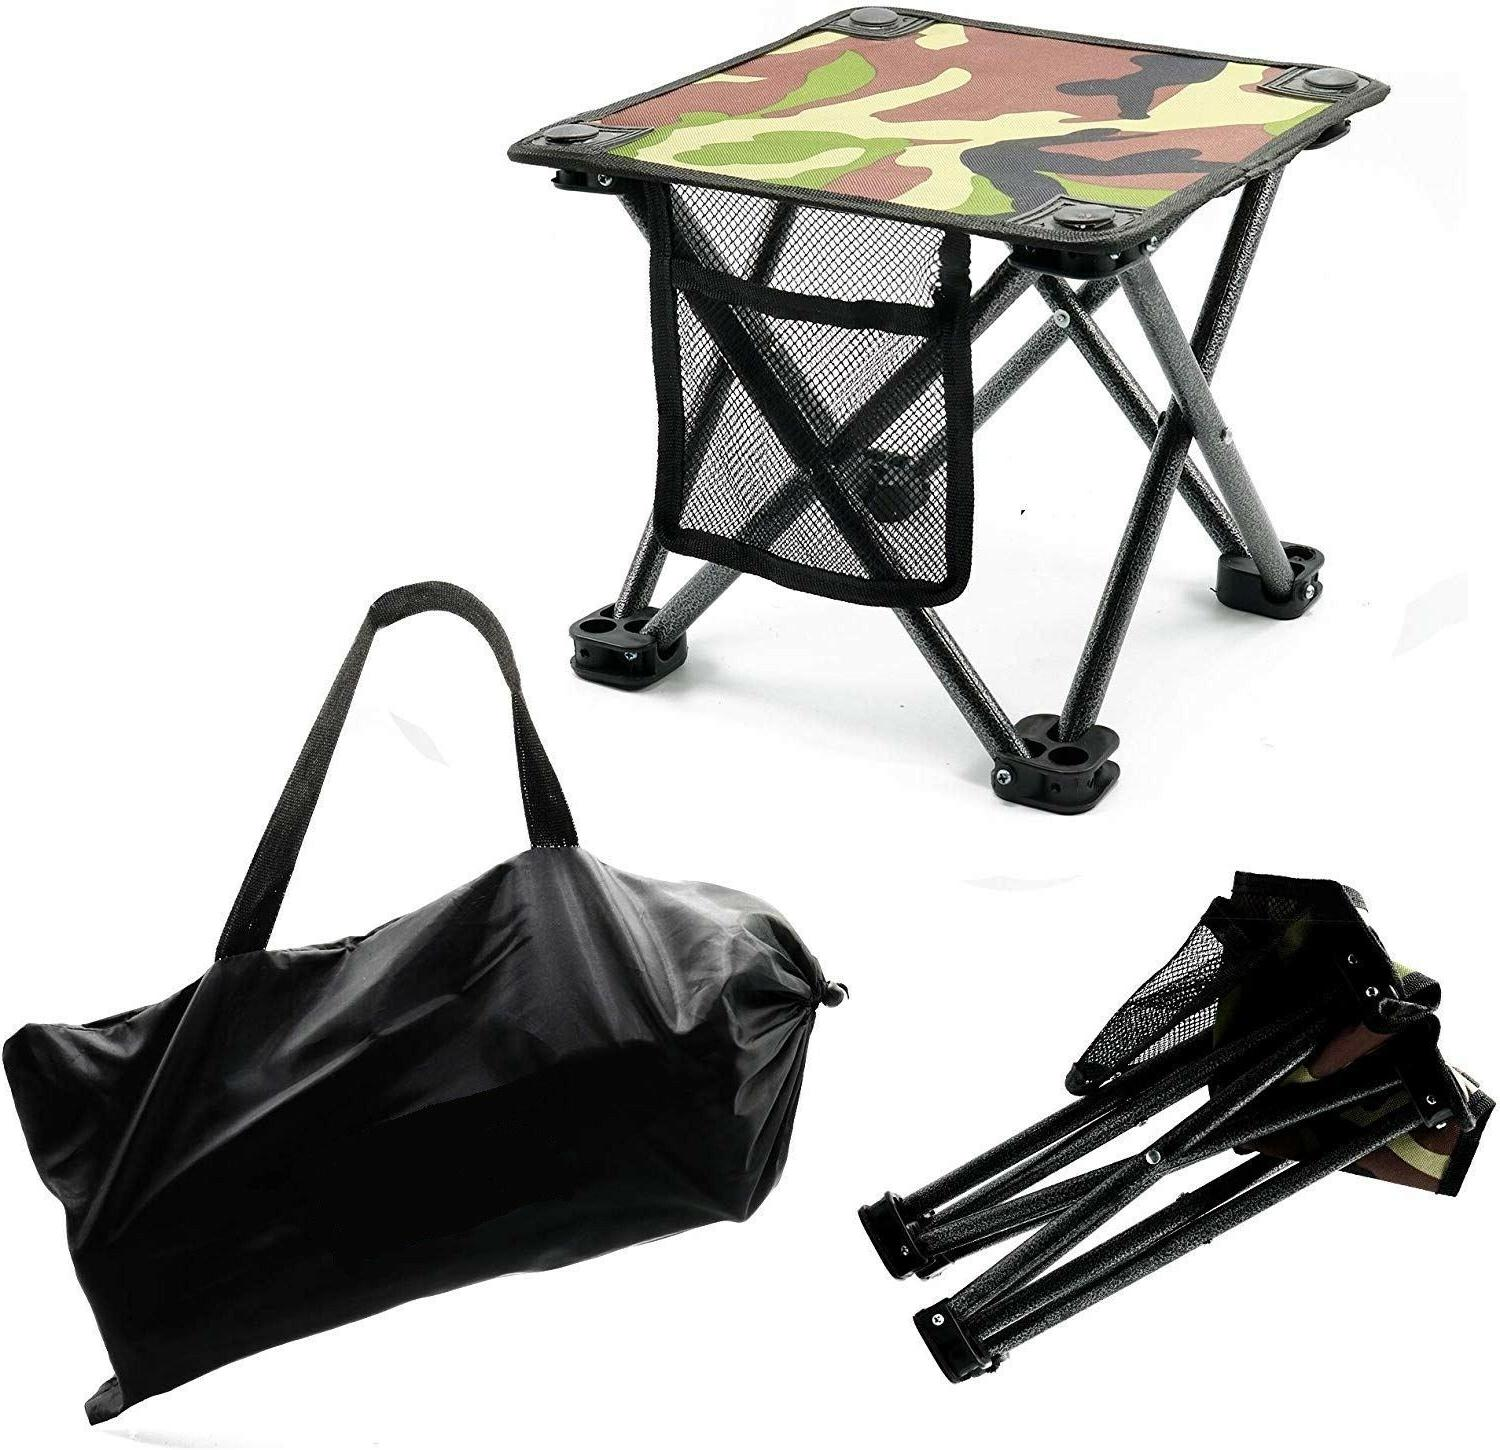 heavy duty portable folding travel chair camping